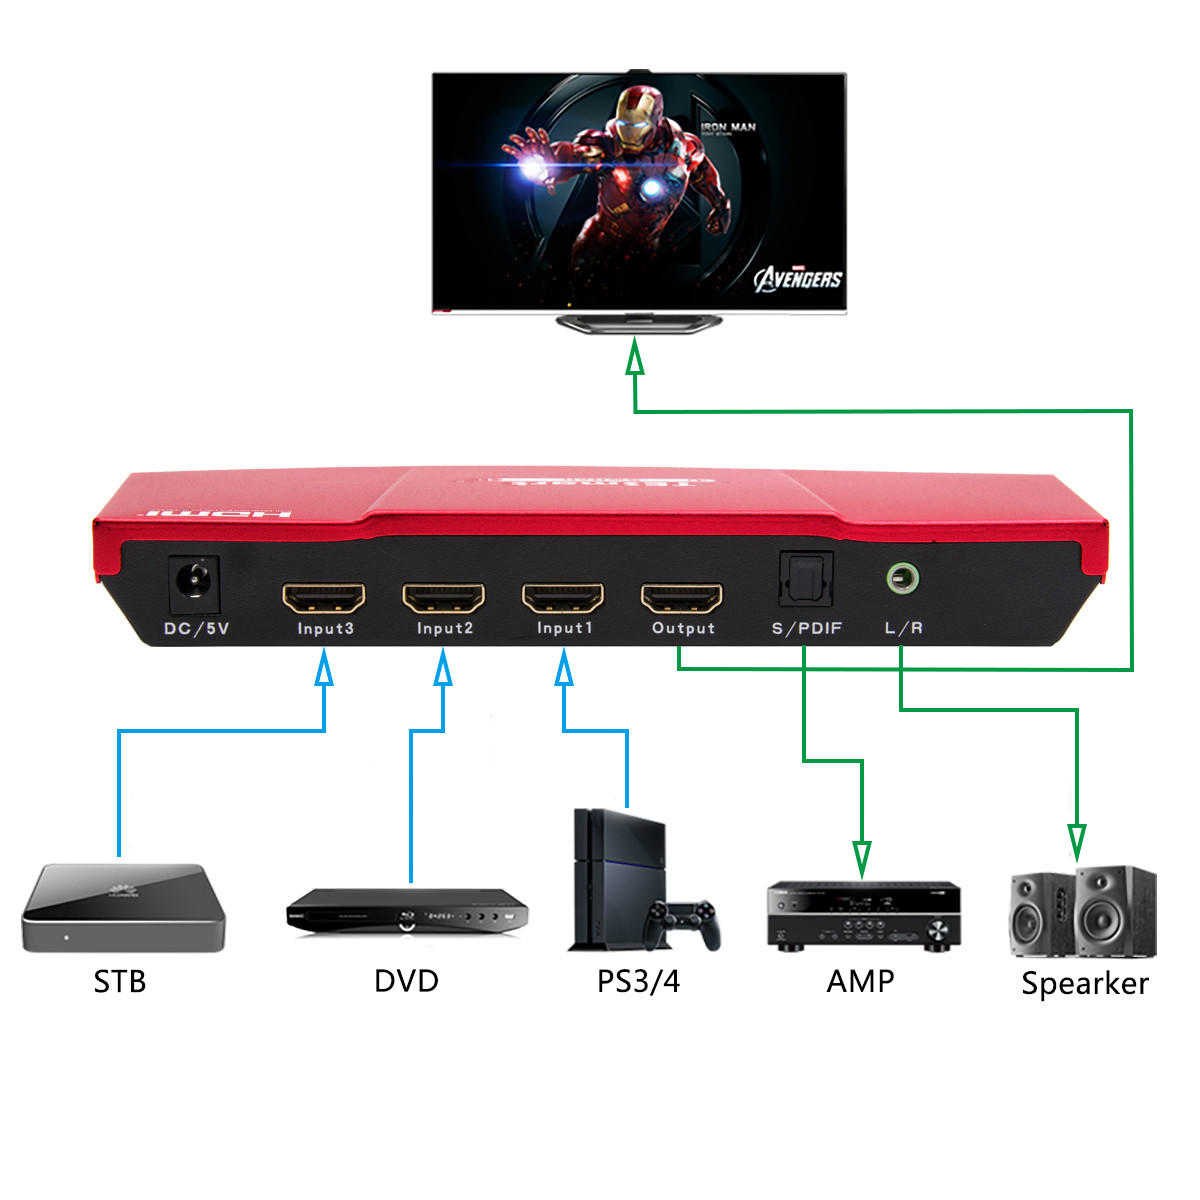 Red 3x1 HDMI Switch with audio out